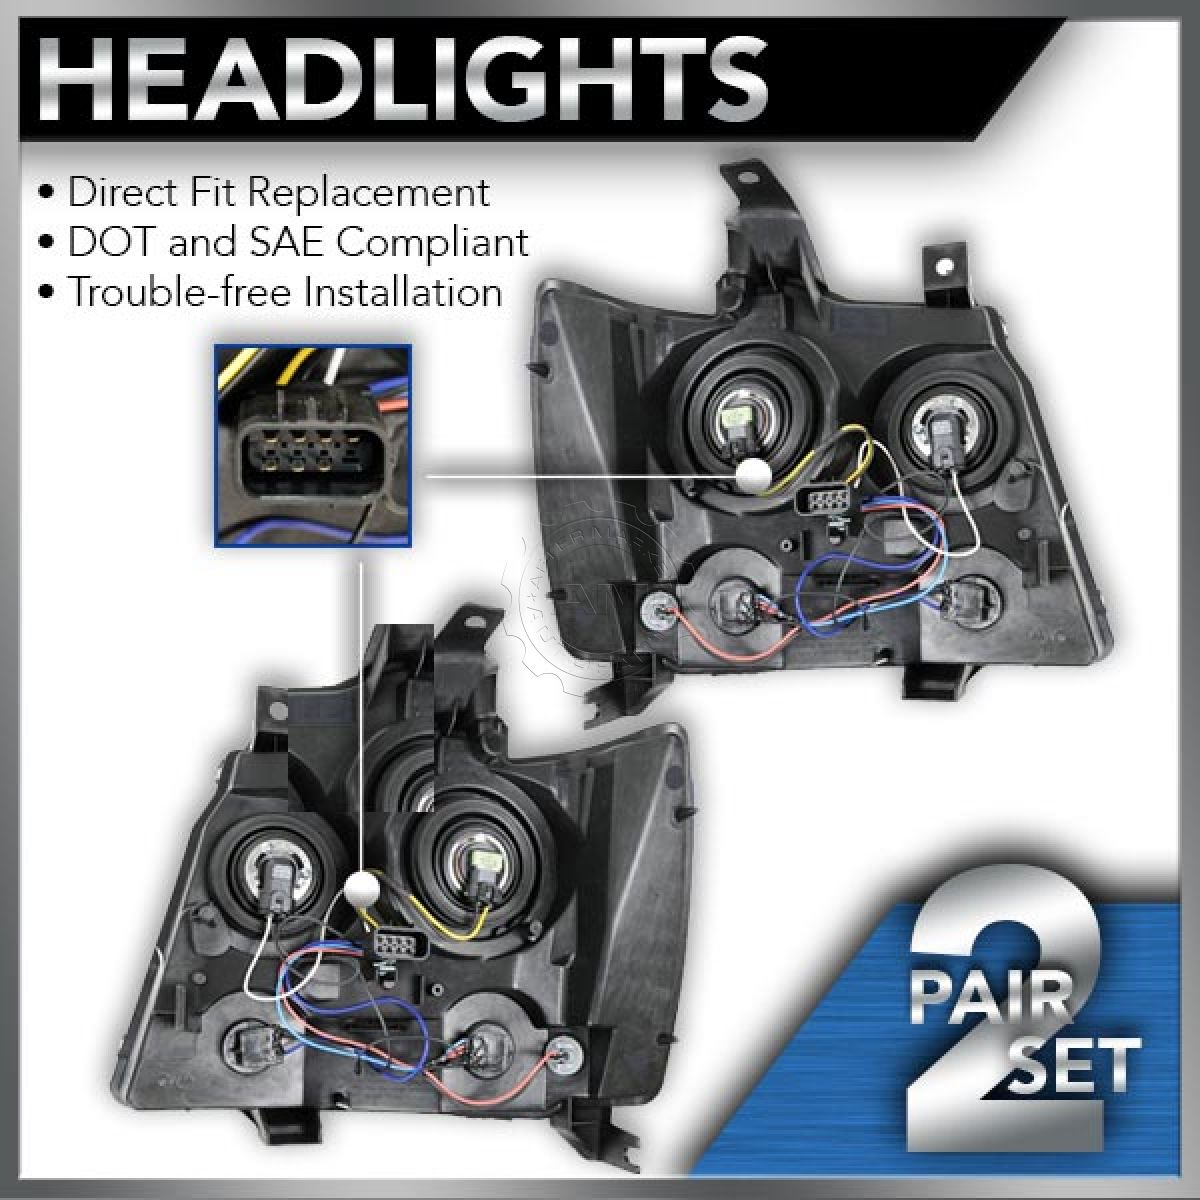 Headlights Headlamps Pair Set of 2 for 07-14 Chevy Suburban Tahoe Avalanche New